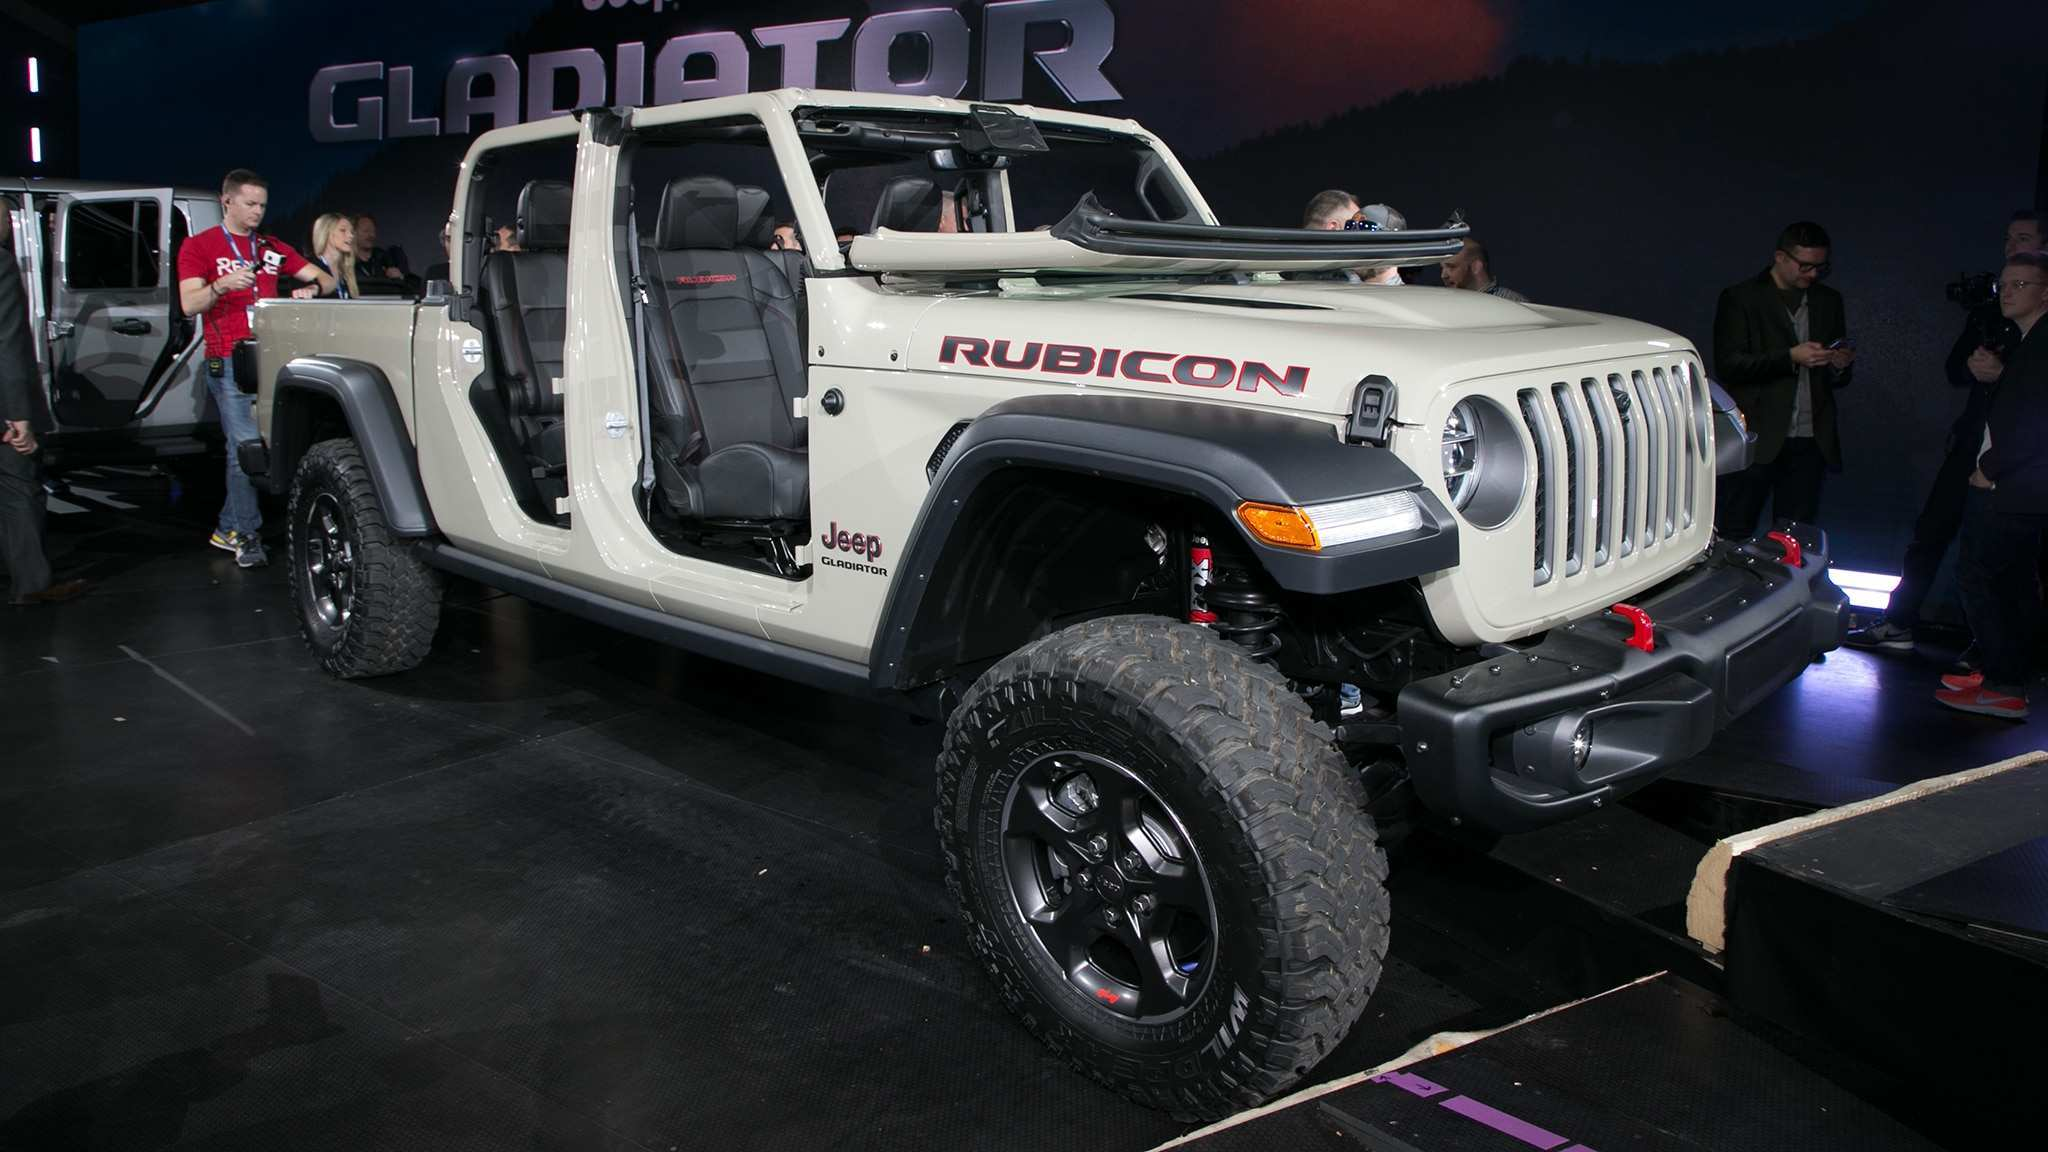 32 All New Jeep Gladiator Images 2020 Wallpaper with Jeep Gladiator Images 2020